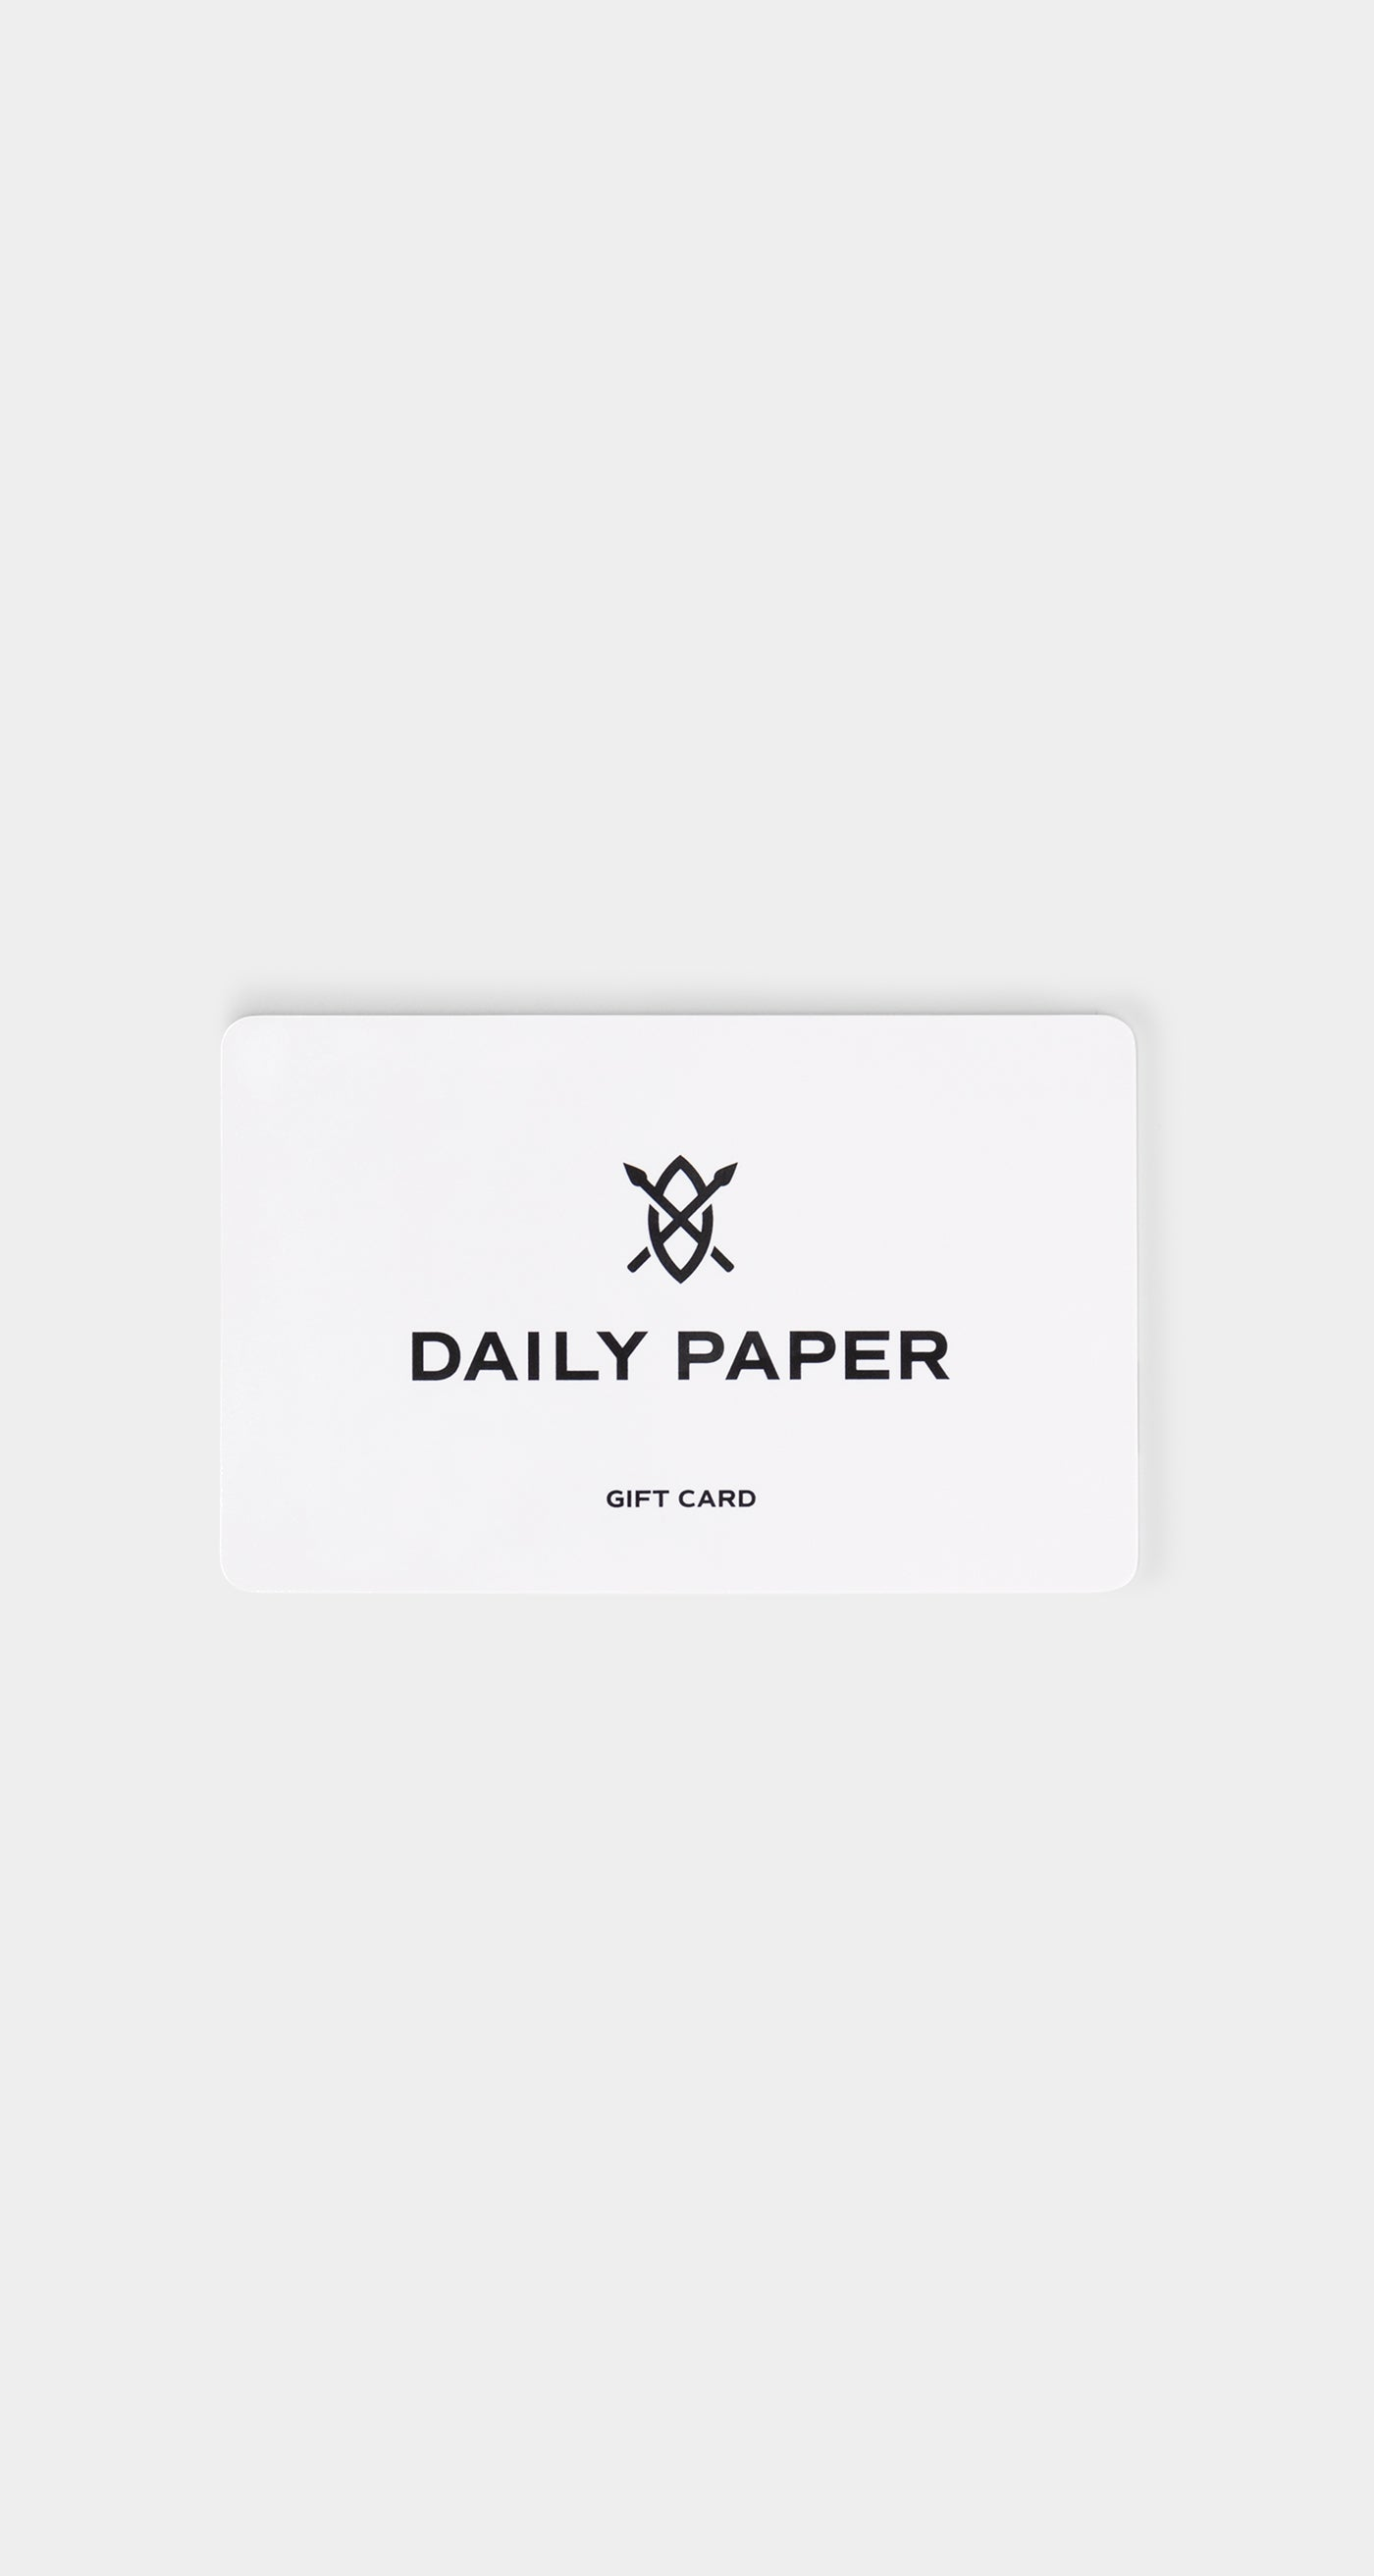 Daily Paper - Gift Card